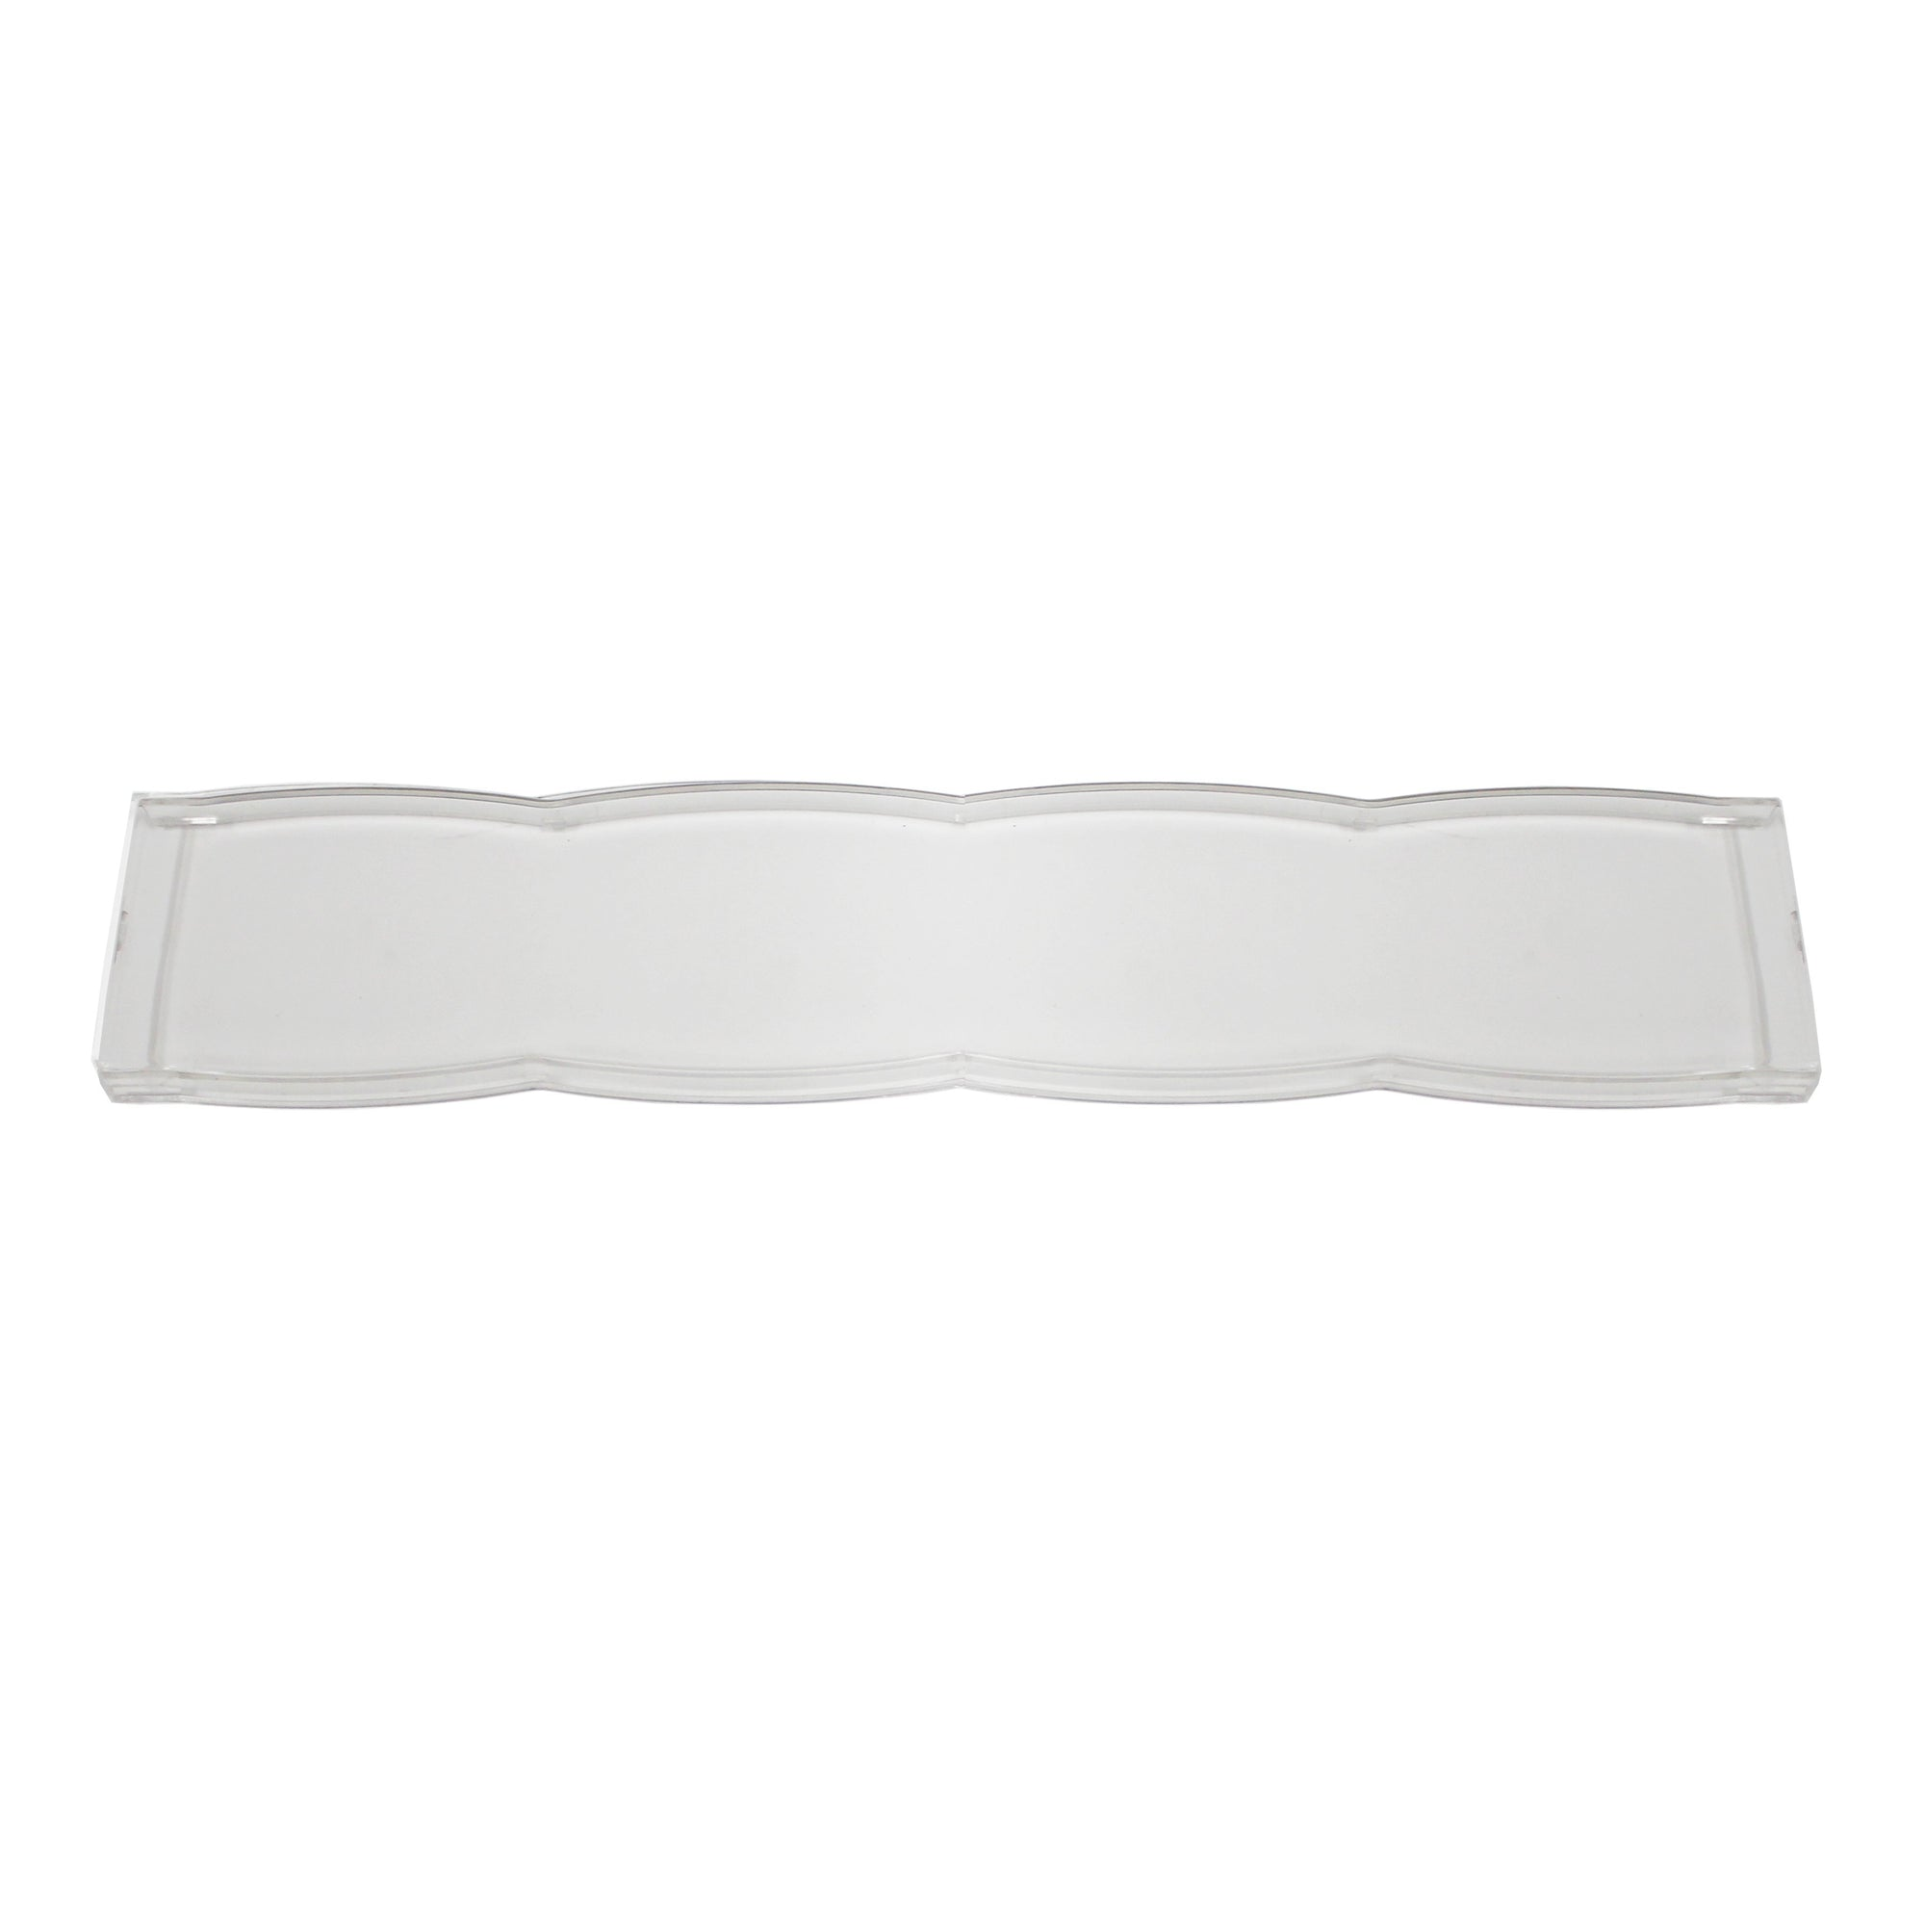 "Baja Designs 708203 S8 Series Light Bar 10"" Rock Guard Clear"